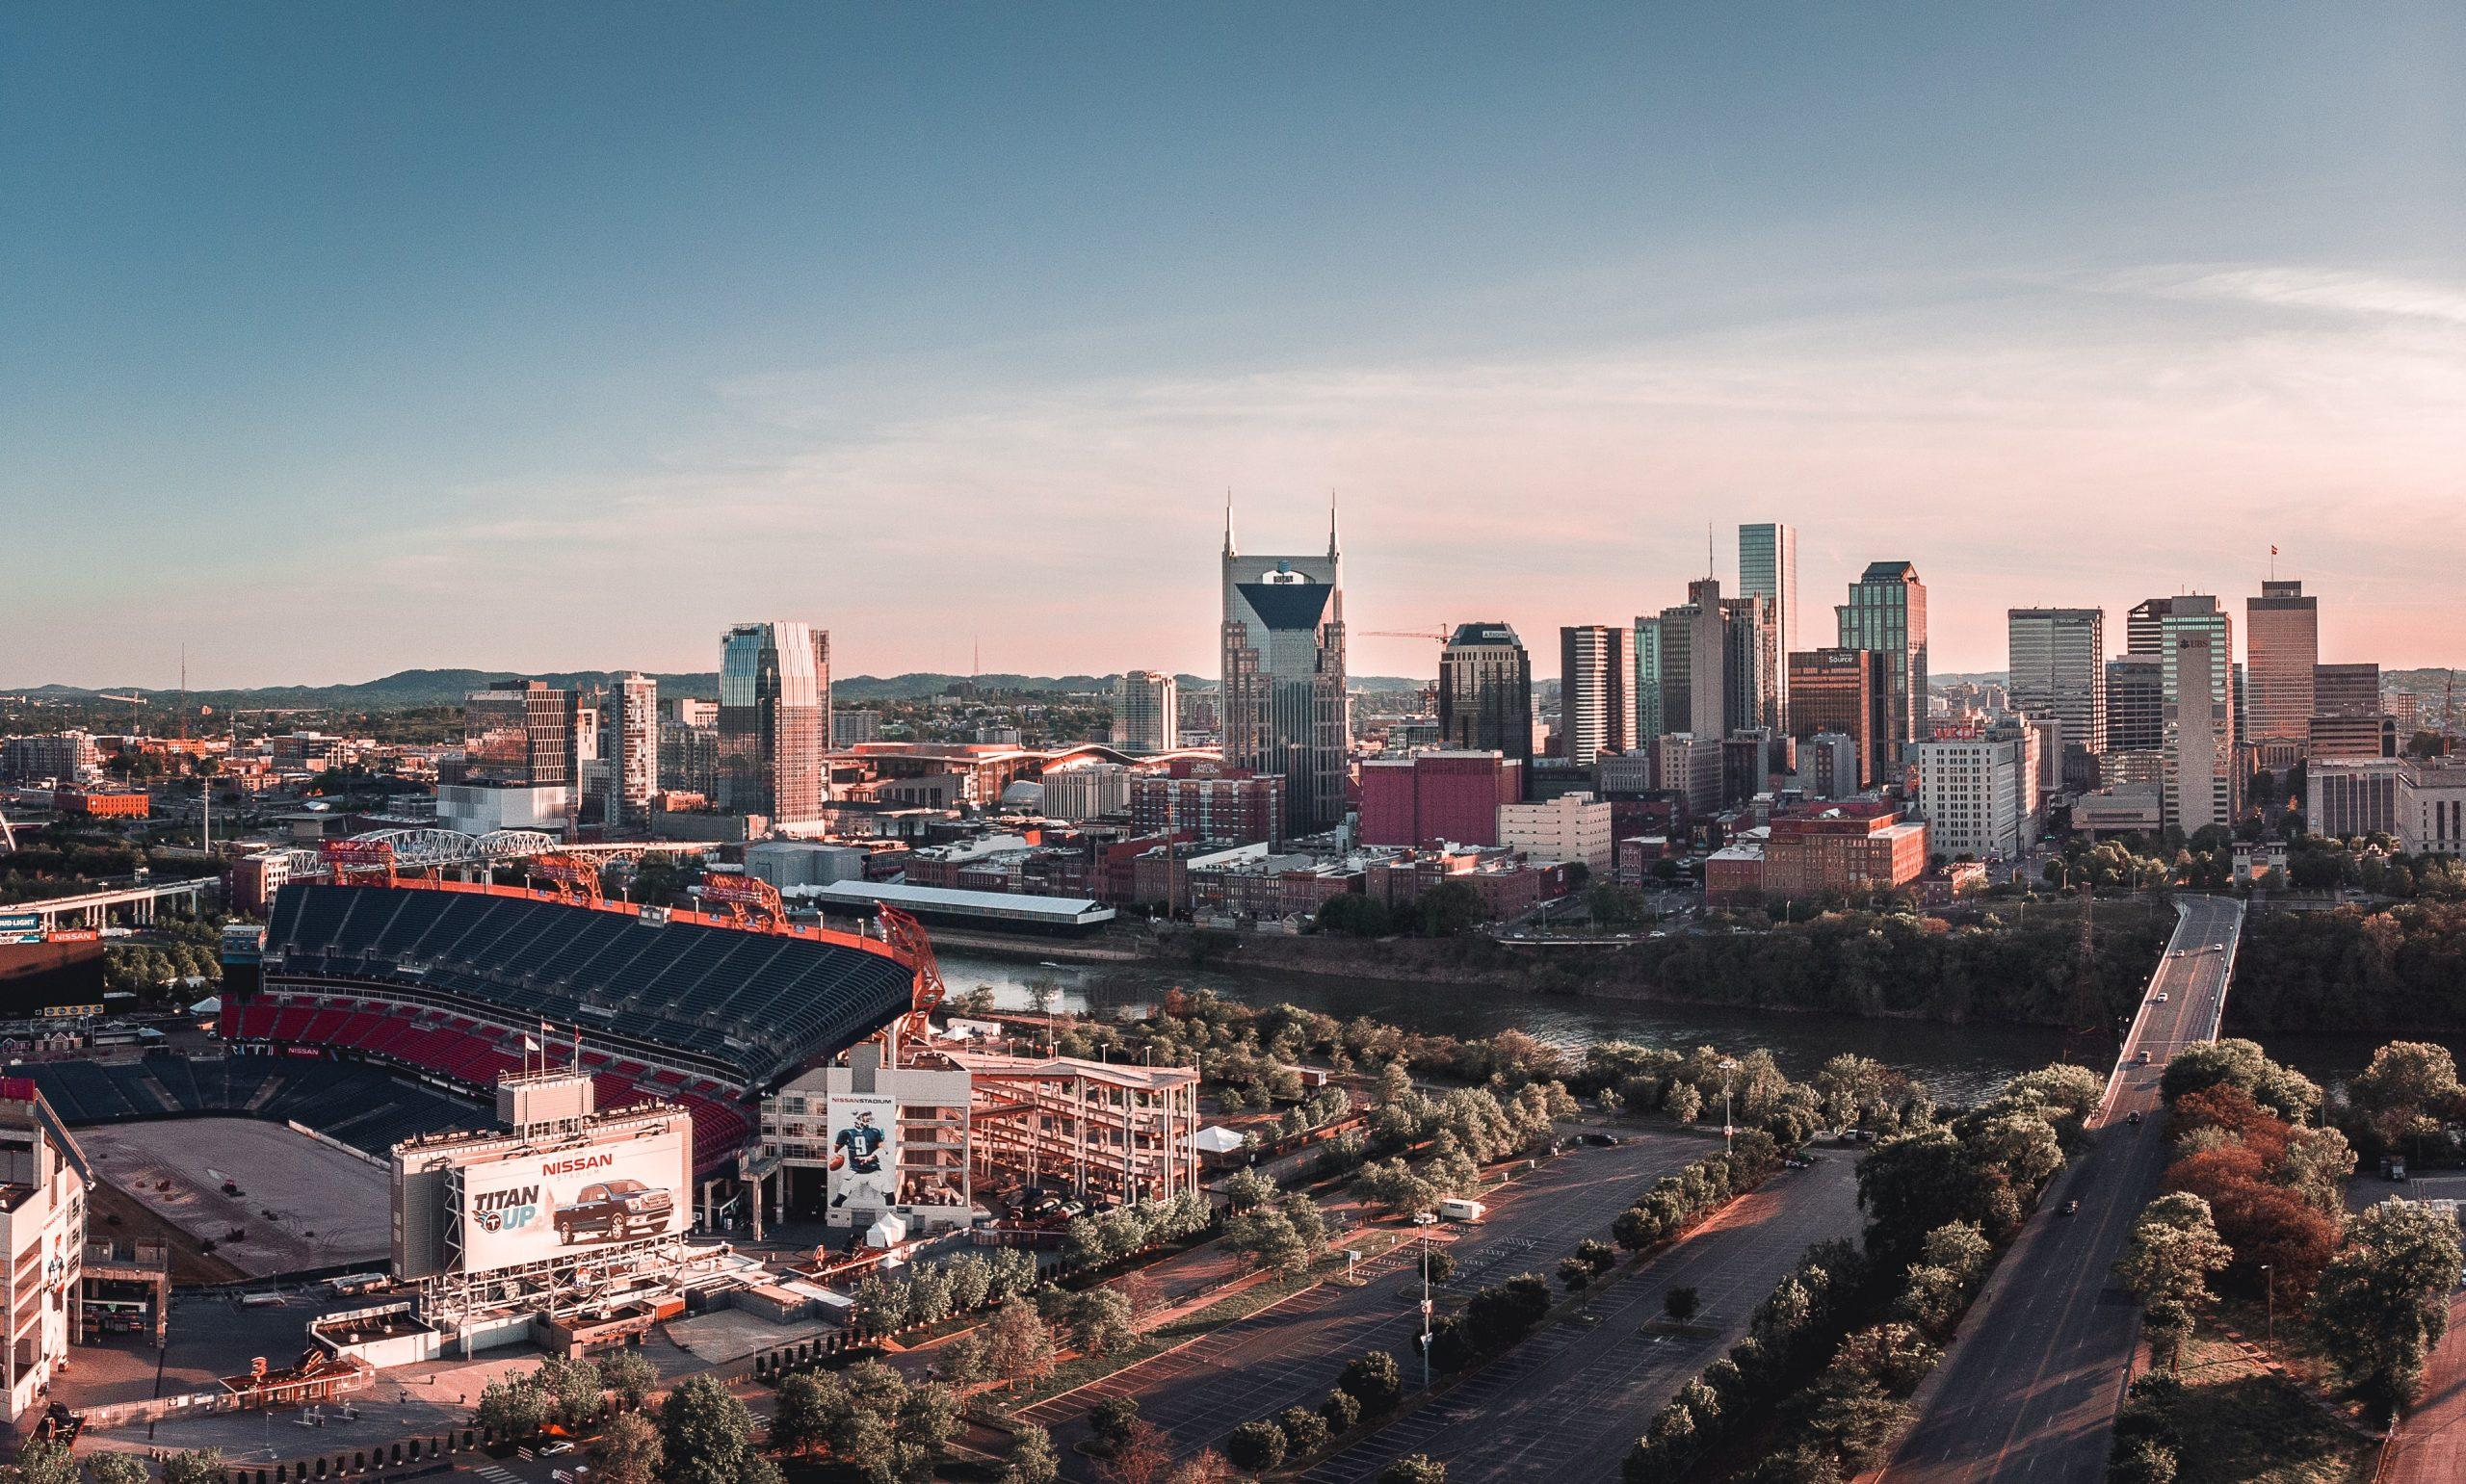 Nashville Real Estate Growth: An Insider's View